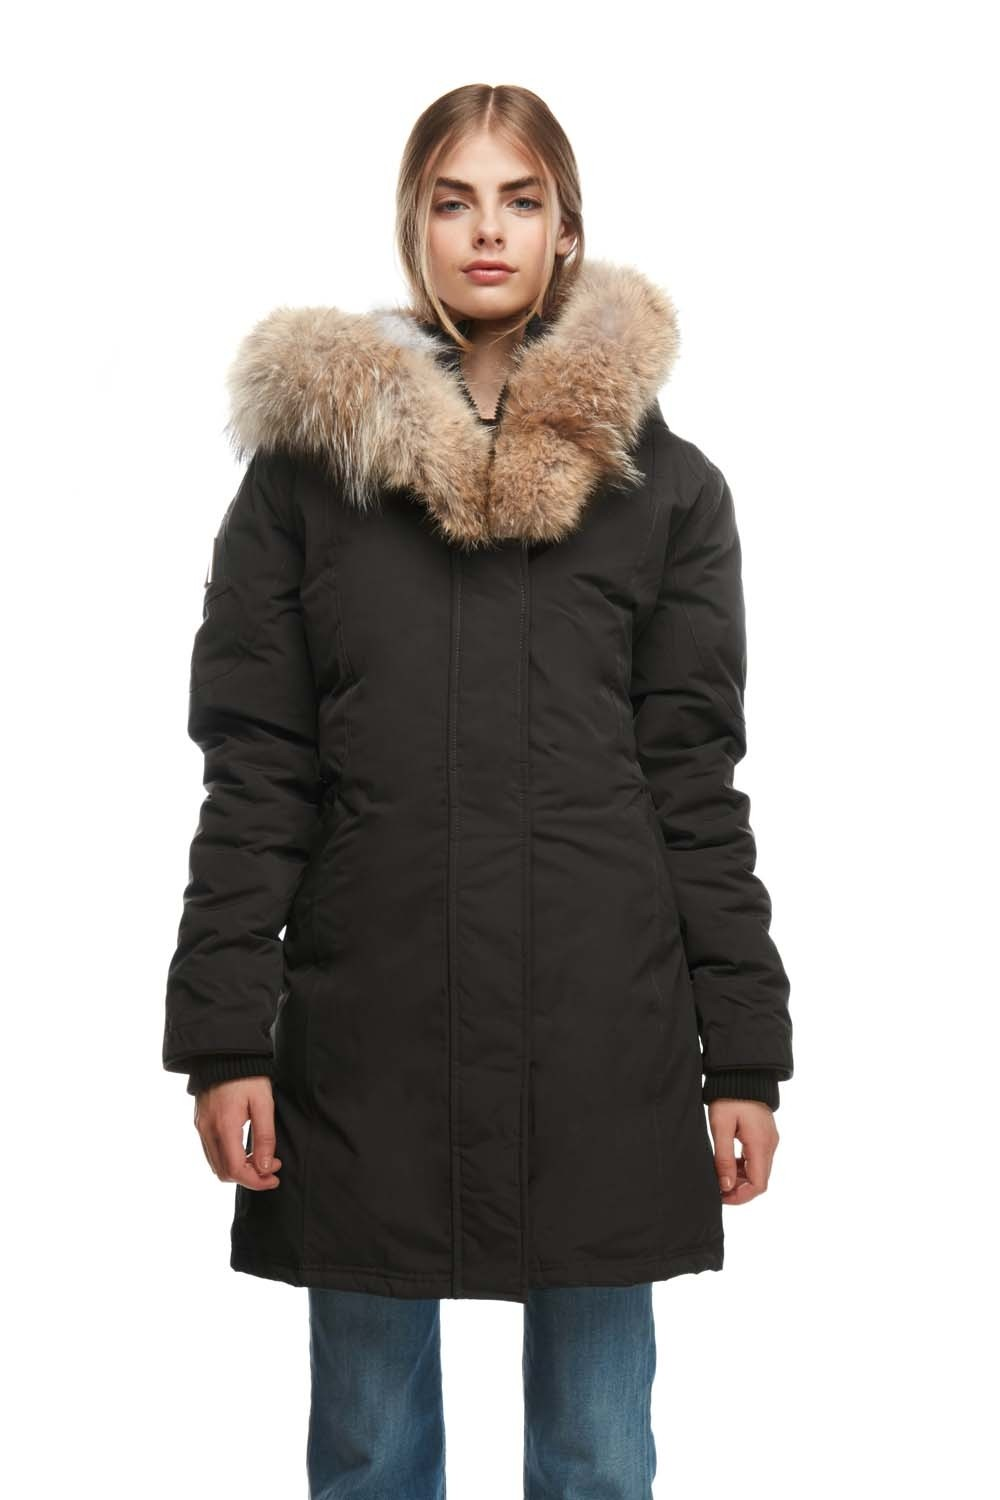 Mont Tremblant - Parka Winter Jacket